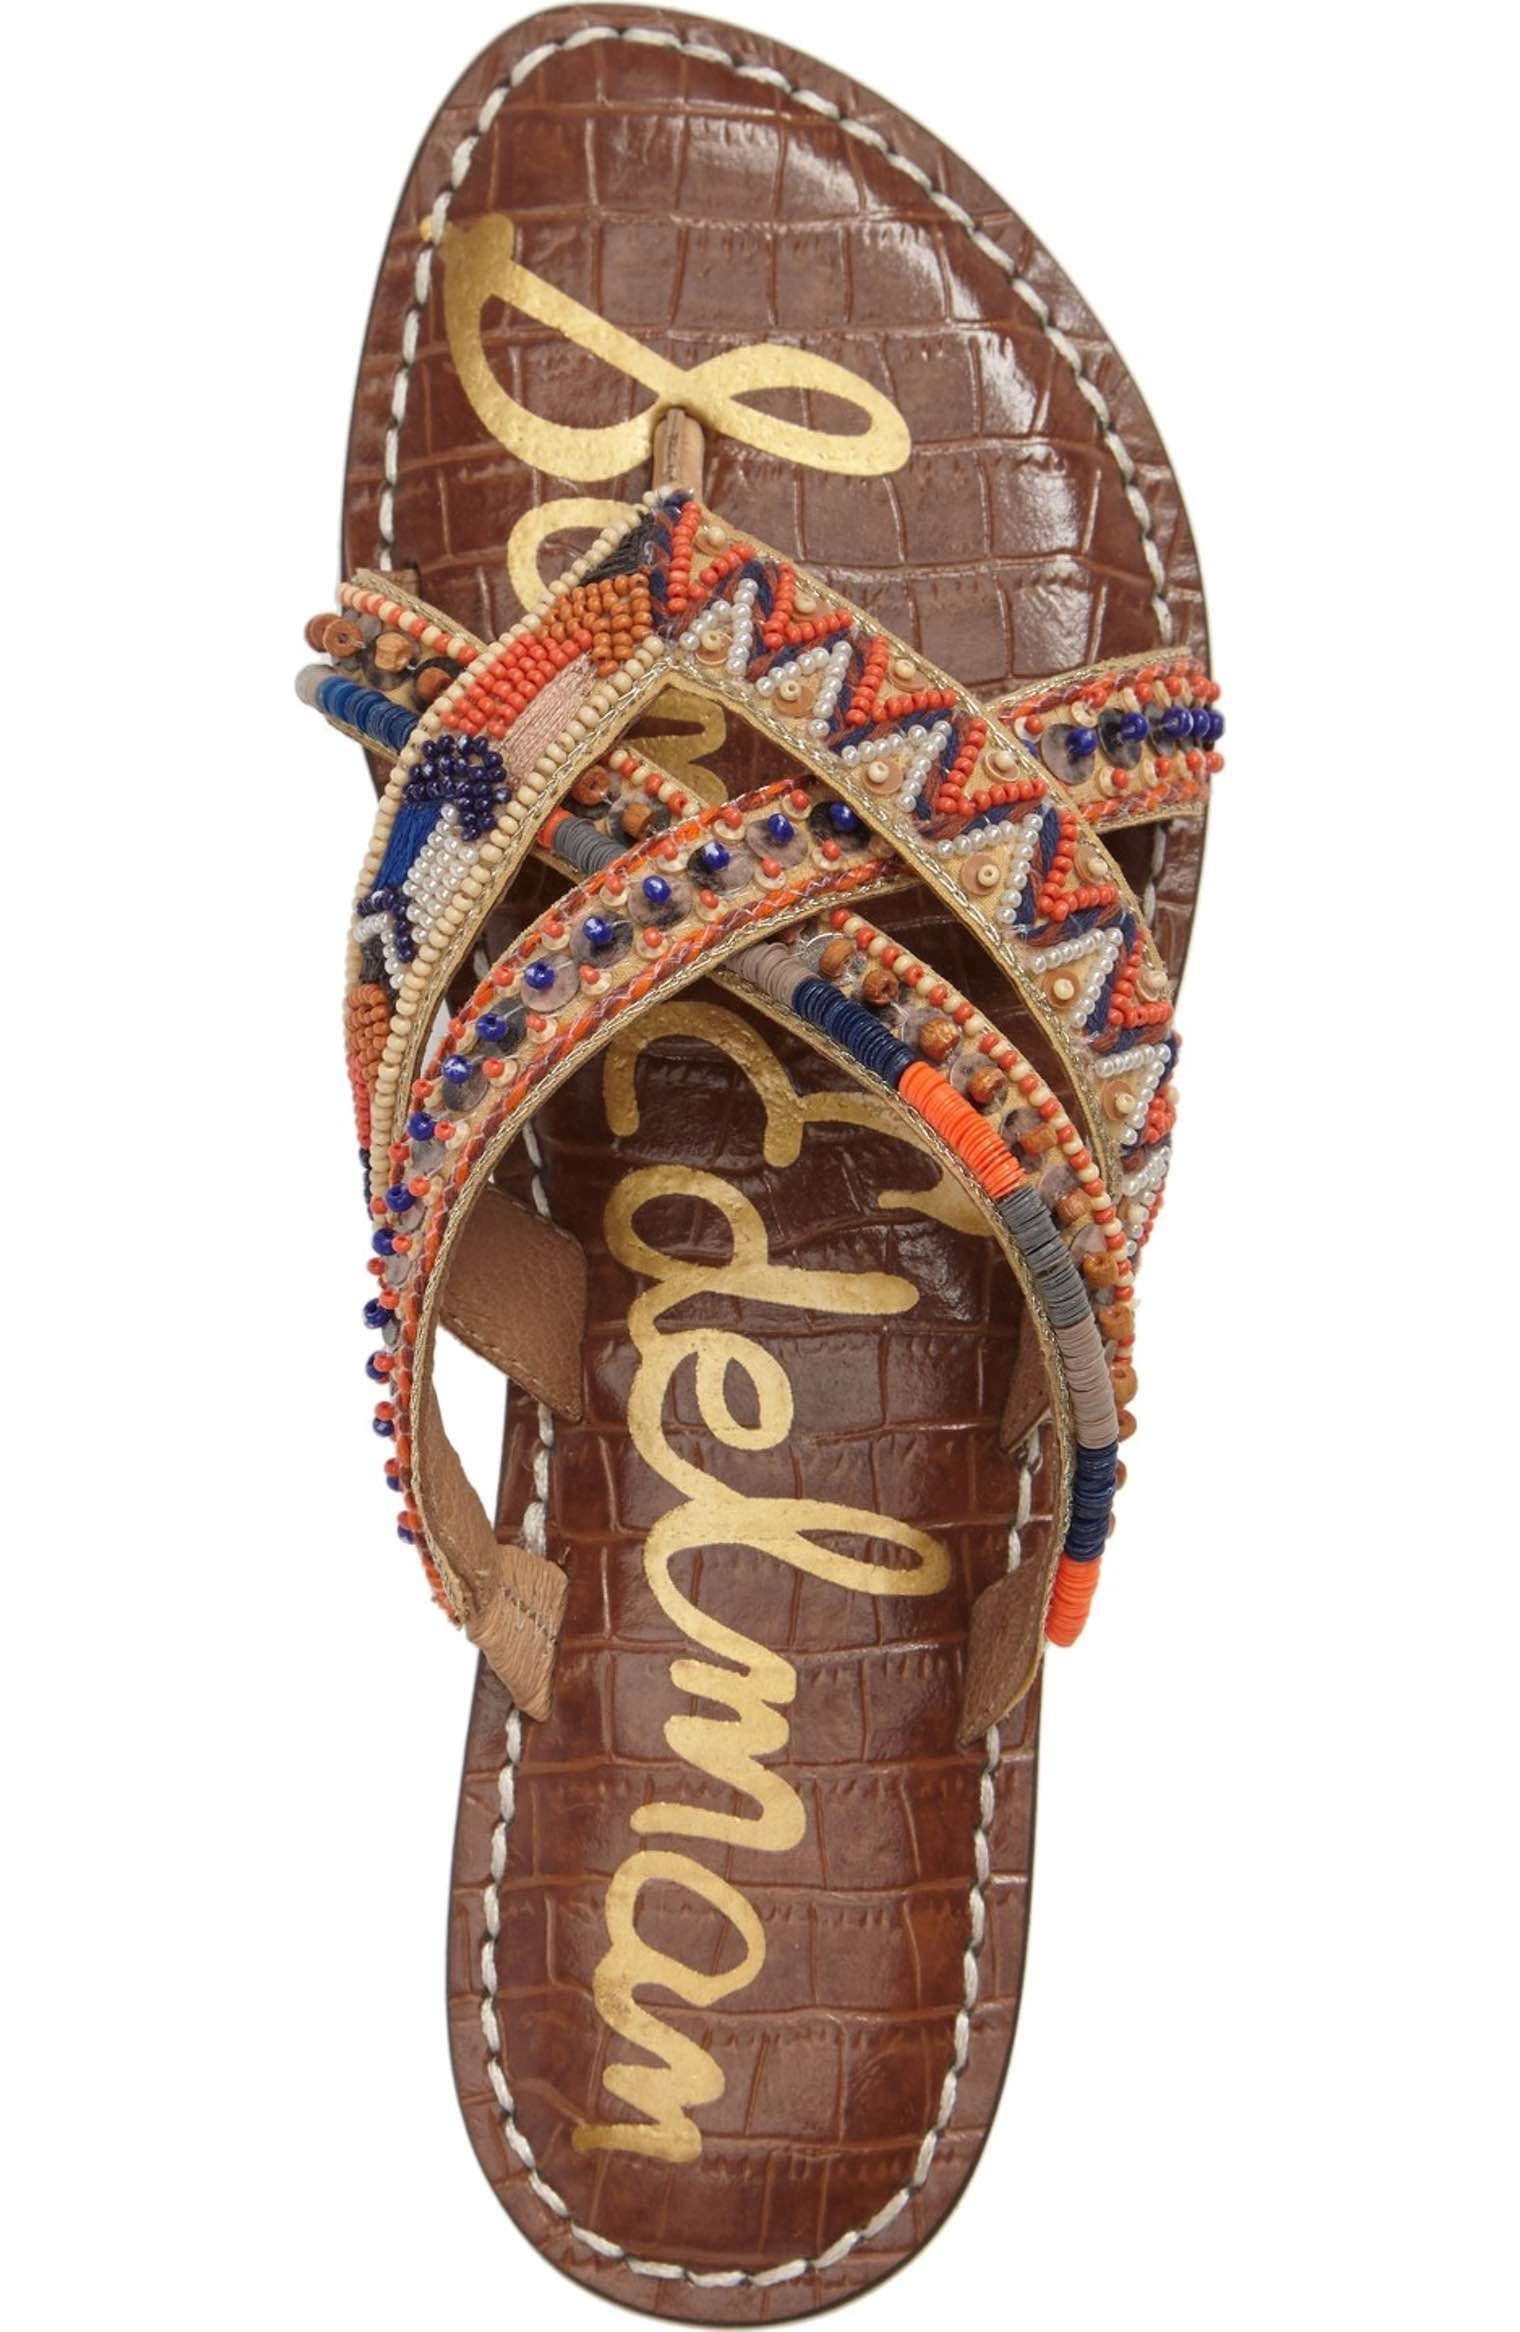 b93f48cc3da69 Interwoven straps embellished with colorful beads, chevron embroidery and  wooden discs brighten this leather slide sandal.